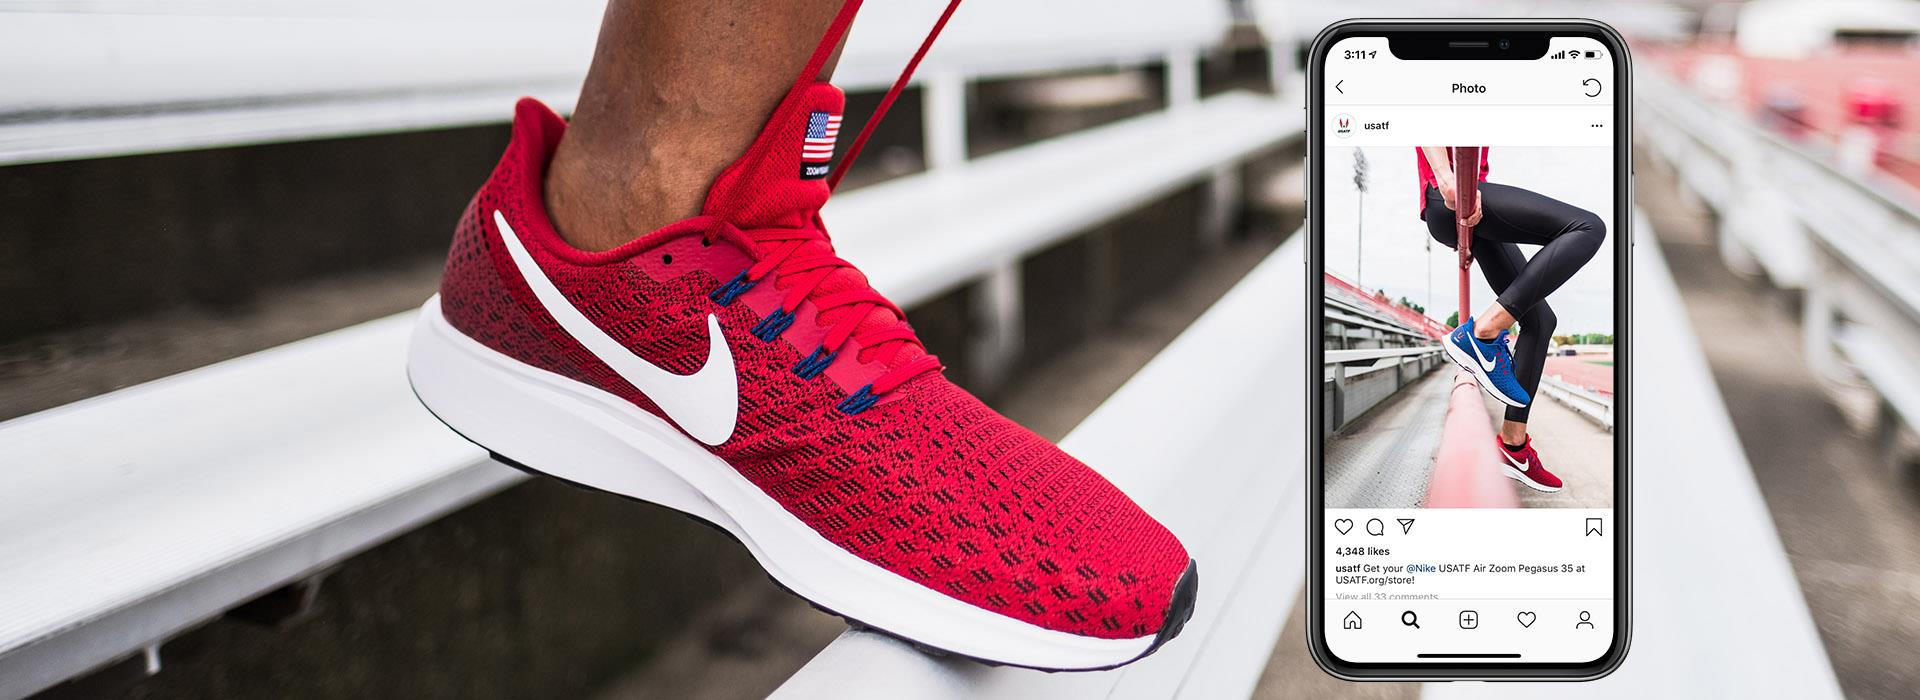 A partnership with Nike brings USA Track & Field shoe release into the limelight.